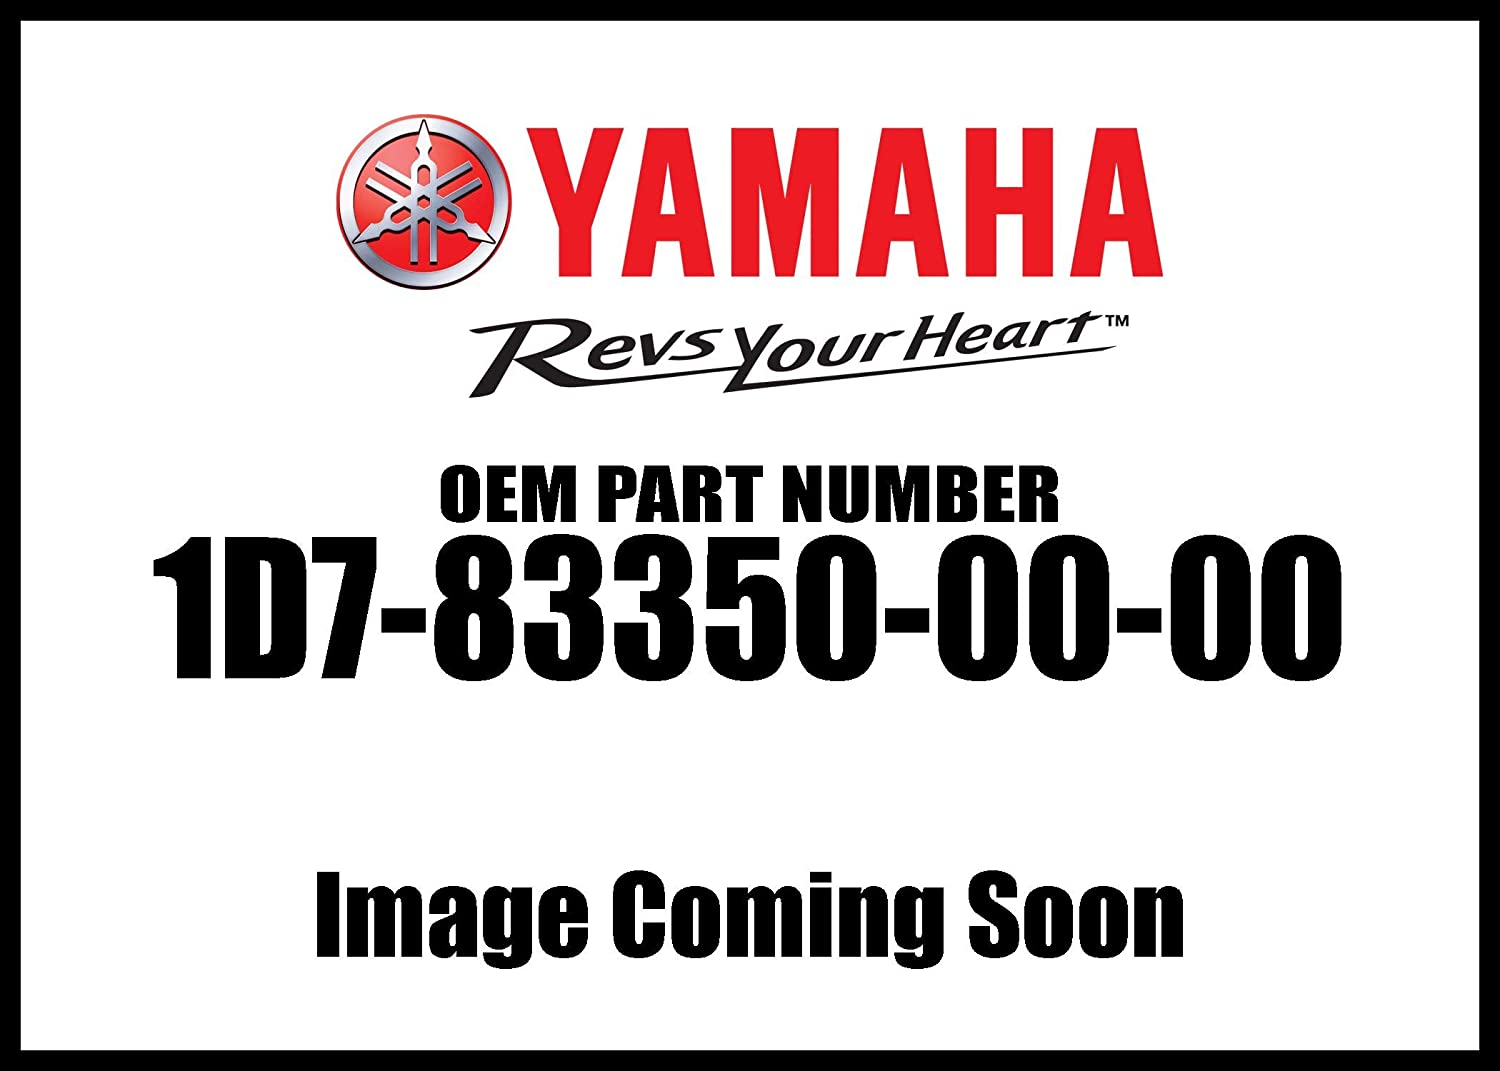 Yamaha 1D7-83350-00-00 Flasher Relay Assembly; 1D7833500000 Made by Yamaha